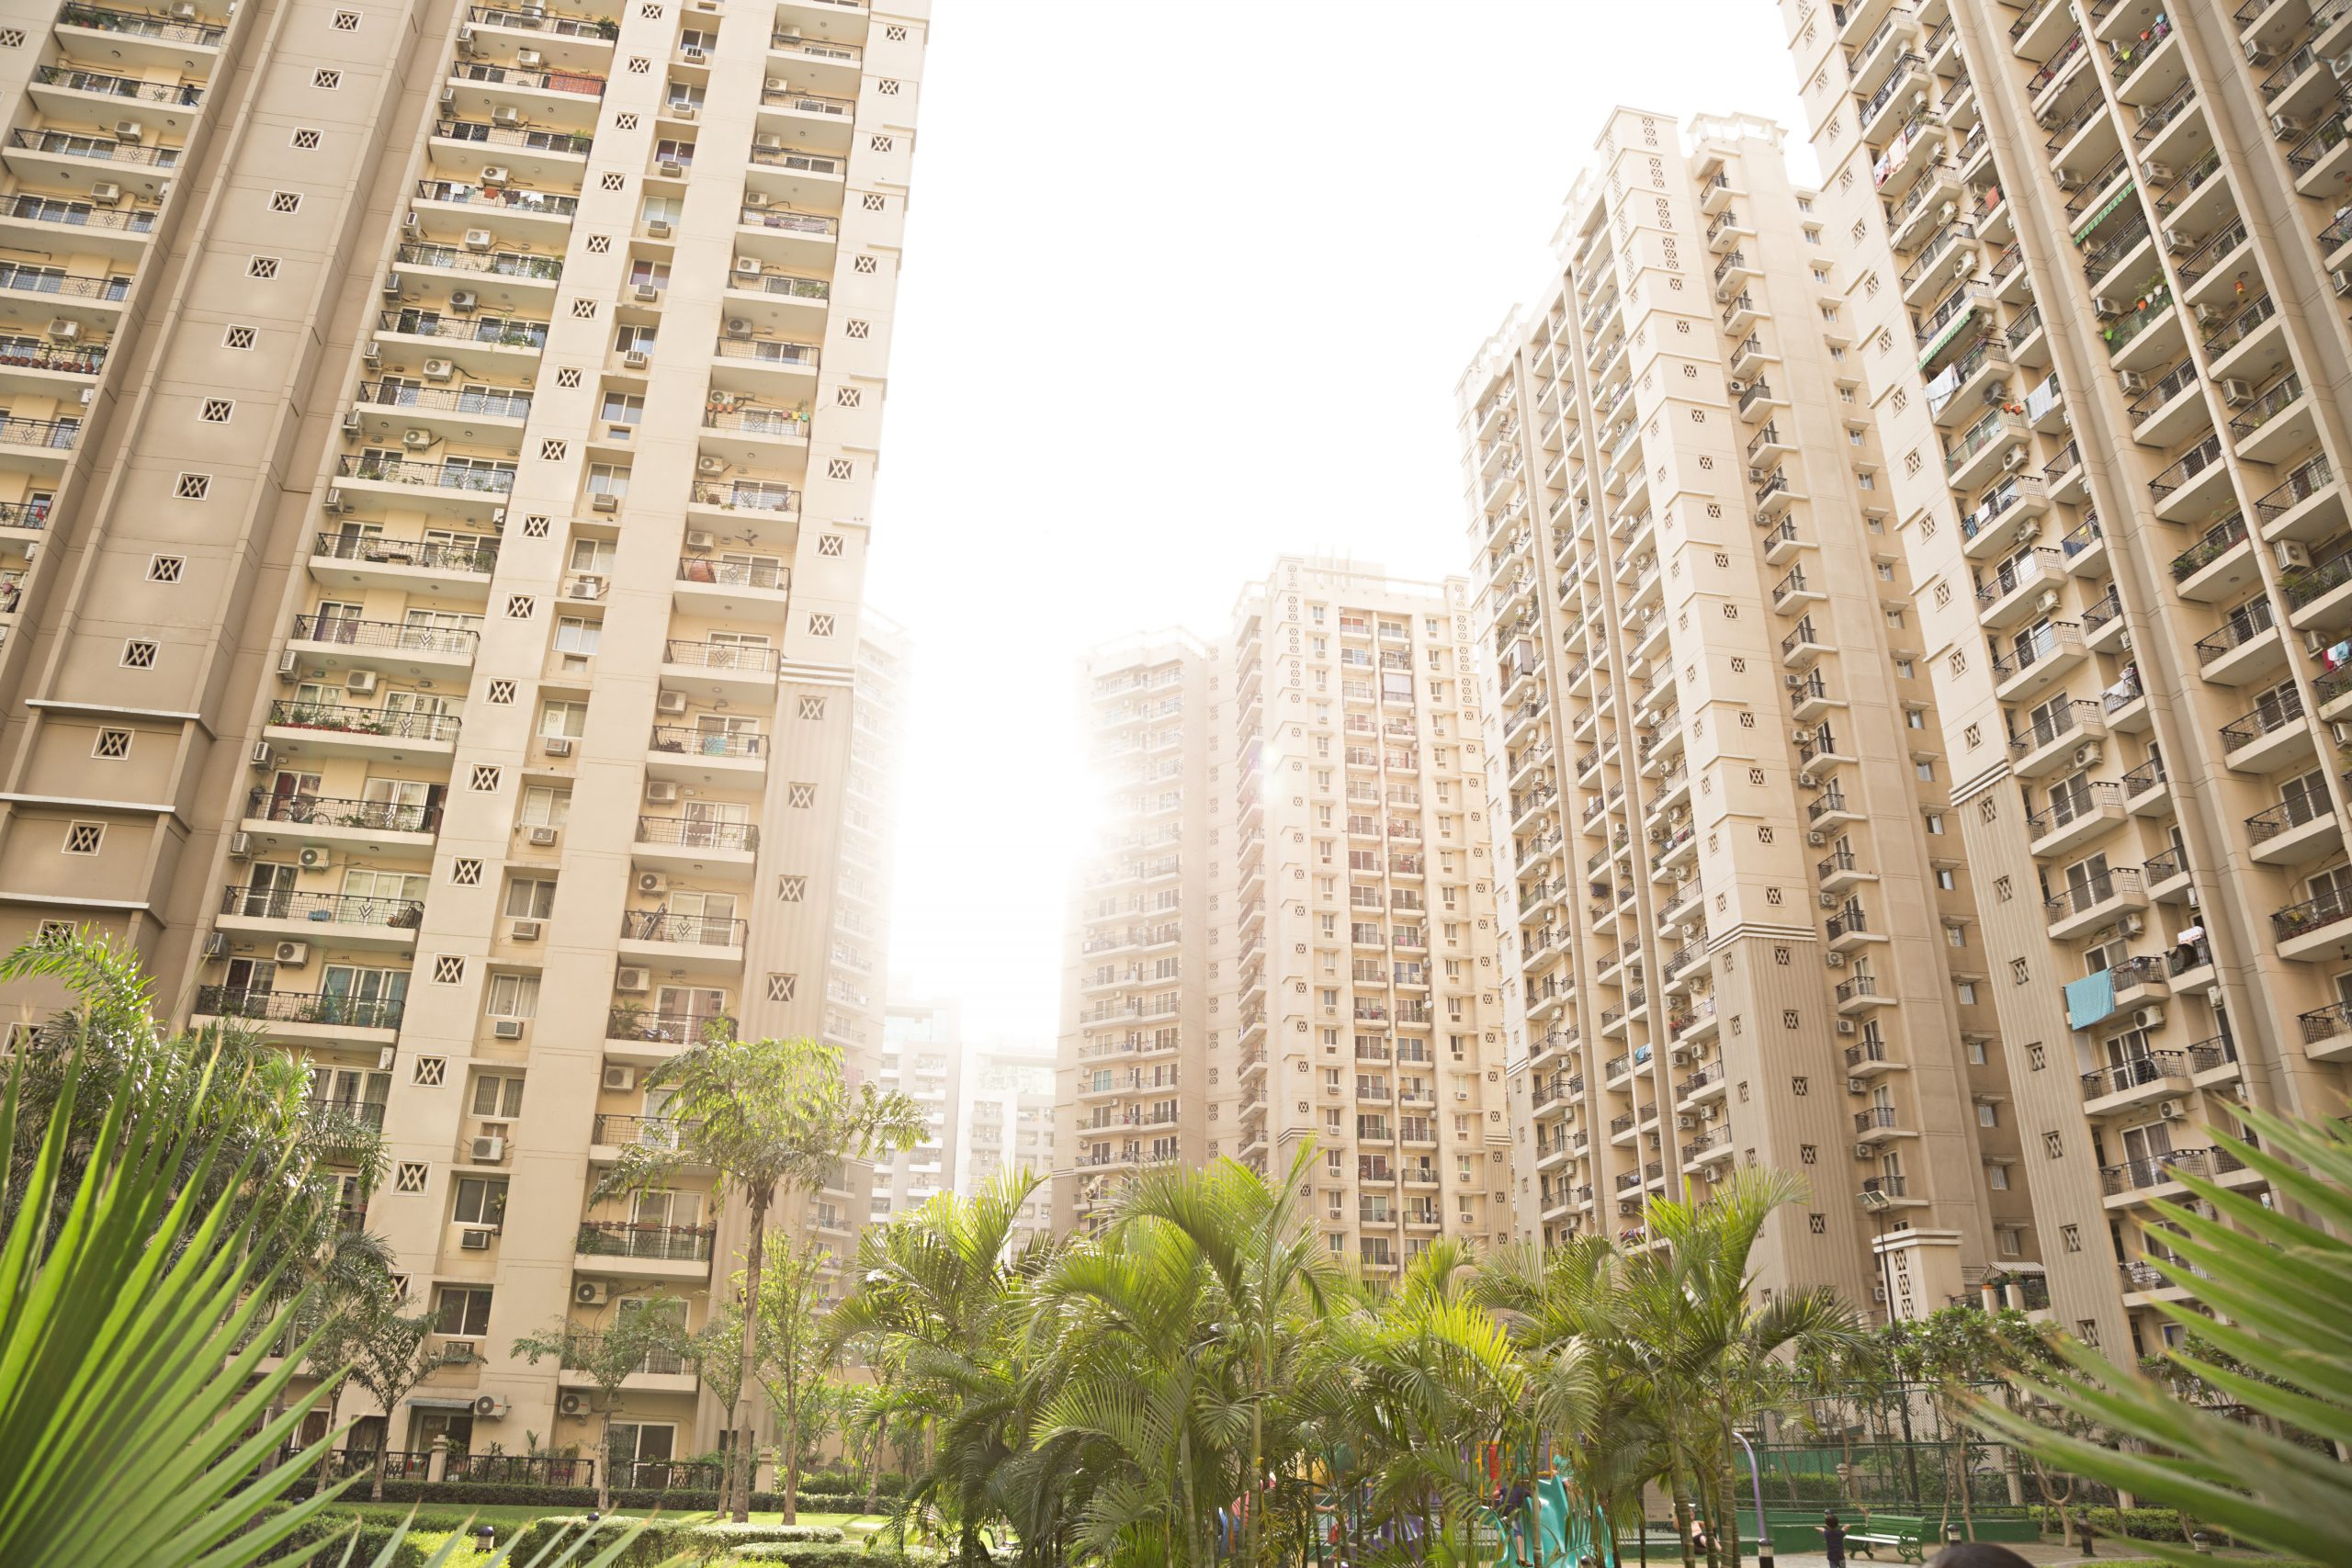 new block of modern apartments stock image